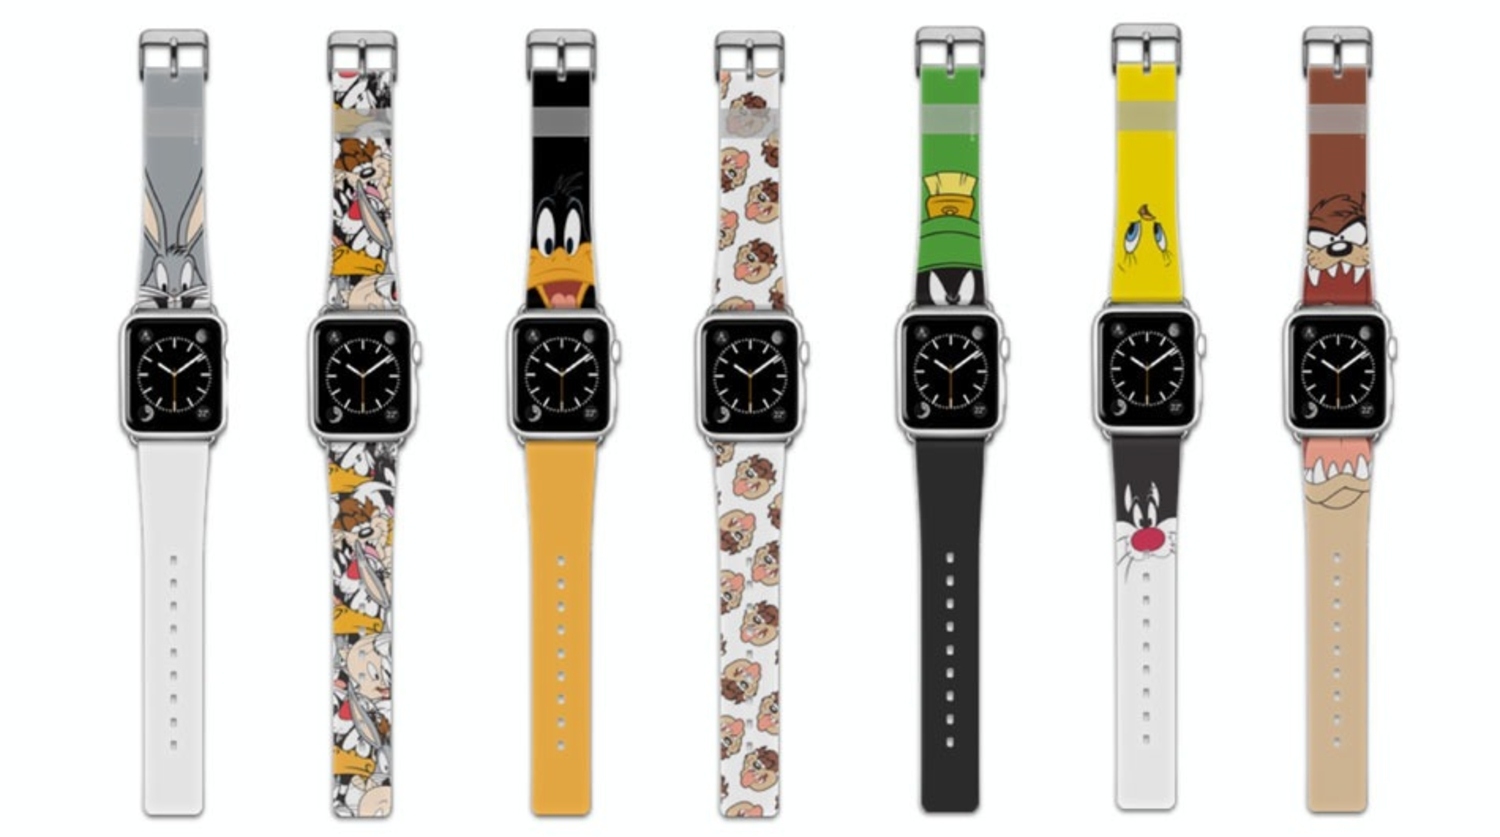 Apple Watch - That's All Folks!